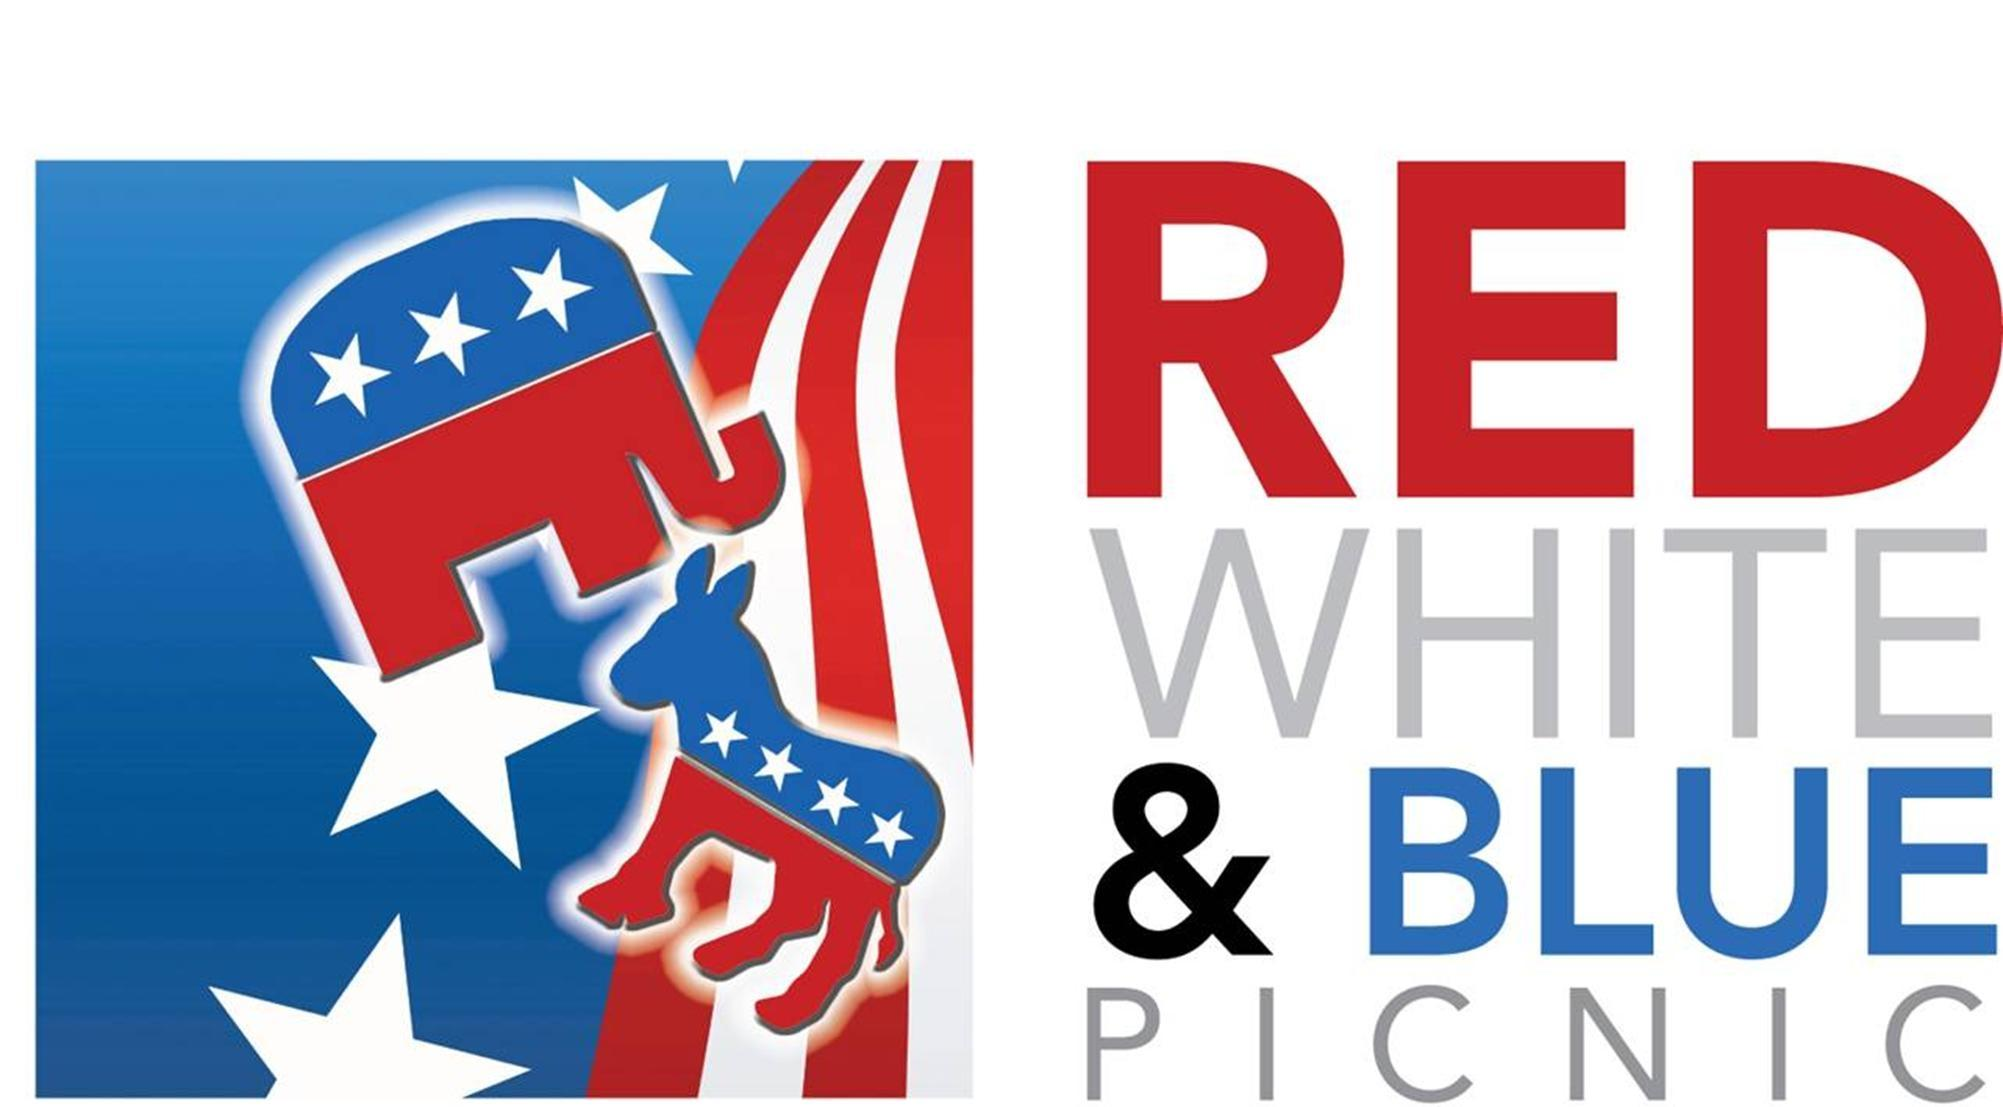 Mcconnell grimes meet in owensboro for political picnic wku owensboro is preparing to host some old fashioned political stump speaking this years red white and blue picnic is tuesday and will be headlined by us m4hsunfo